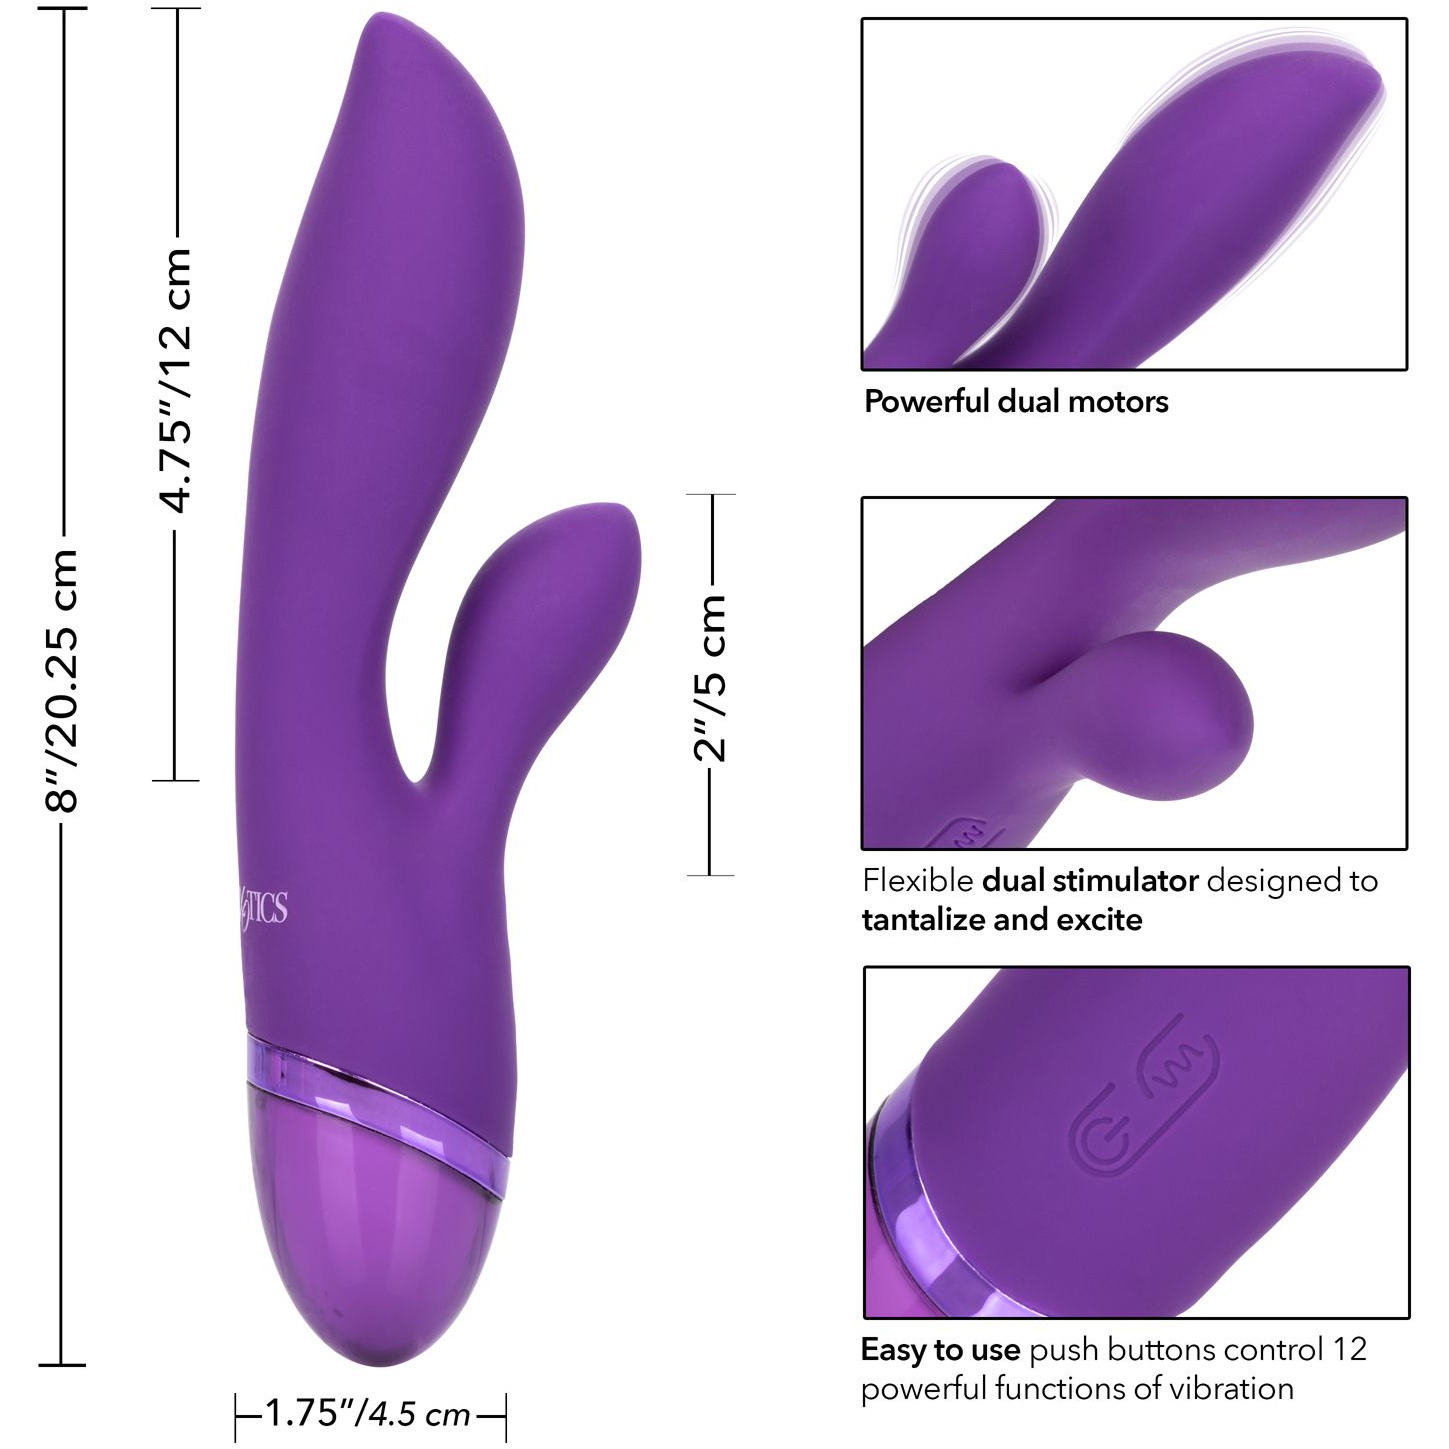 Aura Dual Lover Silicone Rechargeable Waterproof Dual Stimulation Vibrator - Measurements